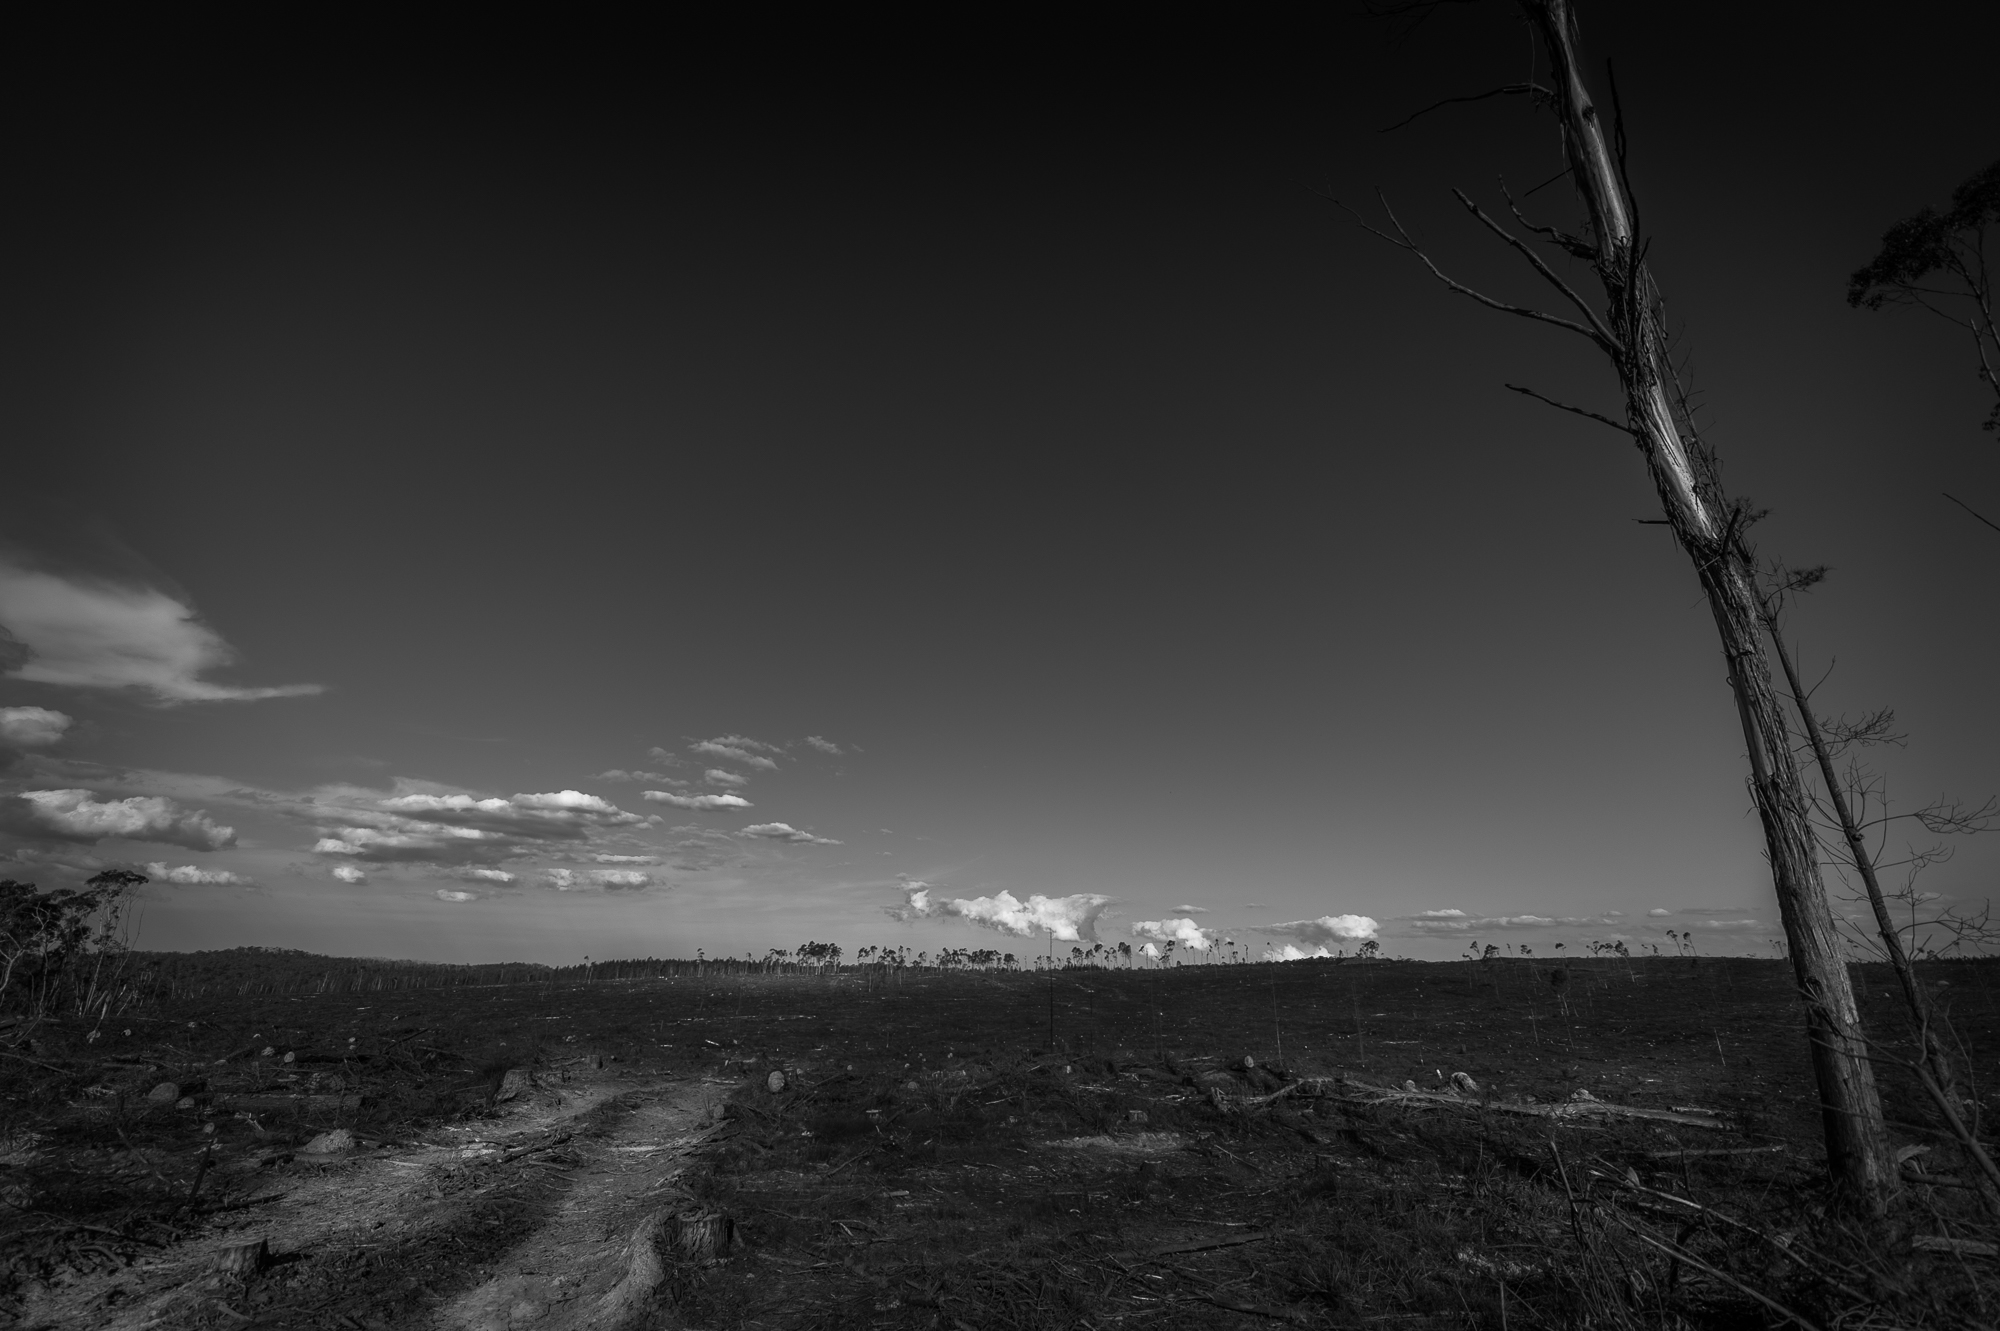 Black and white landscape photograph of recently harvested plantation forest